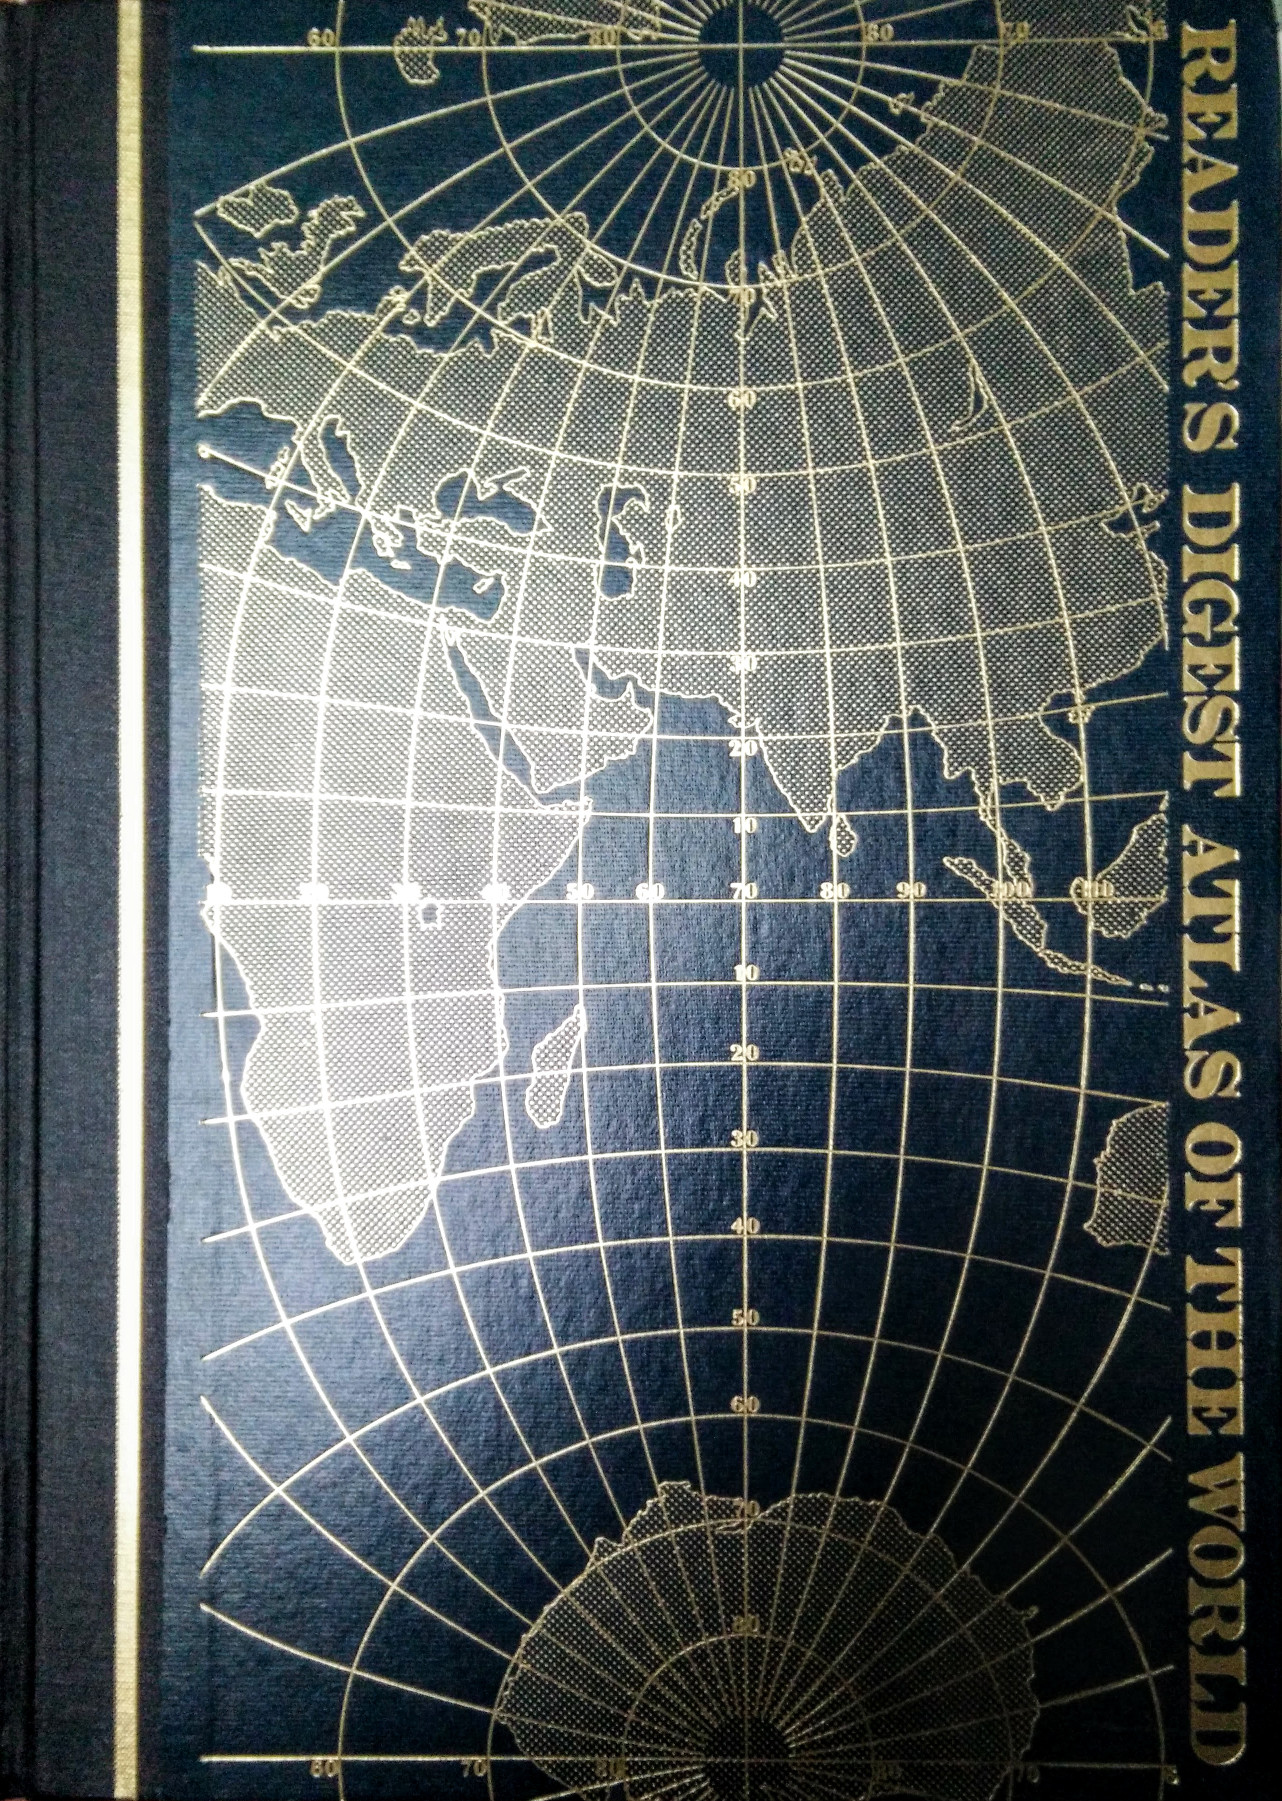 Reader's Digest Atlas of the World